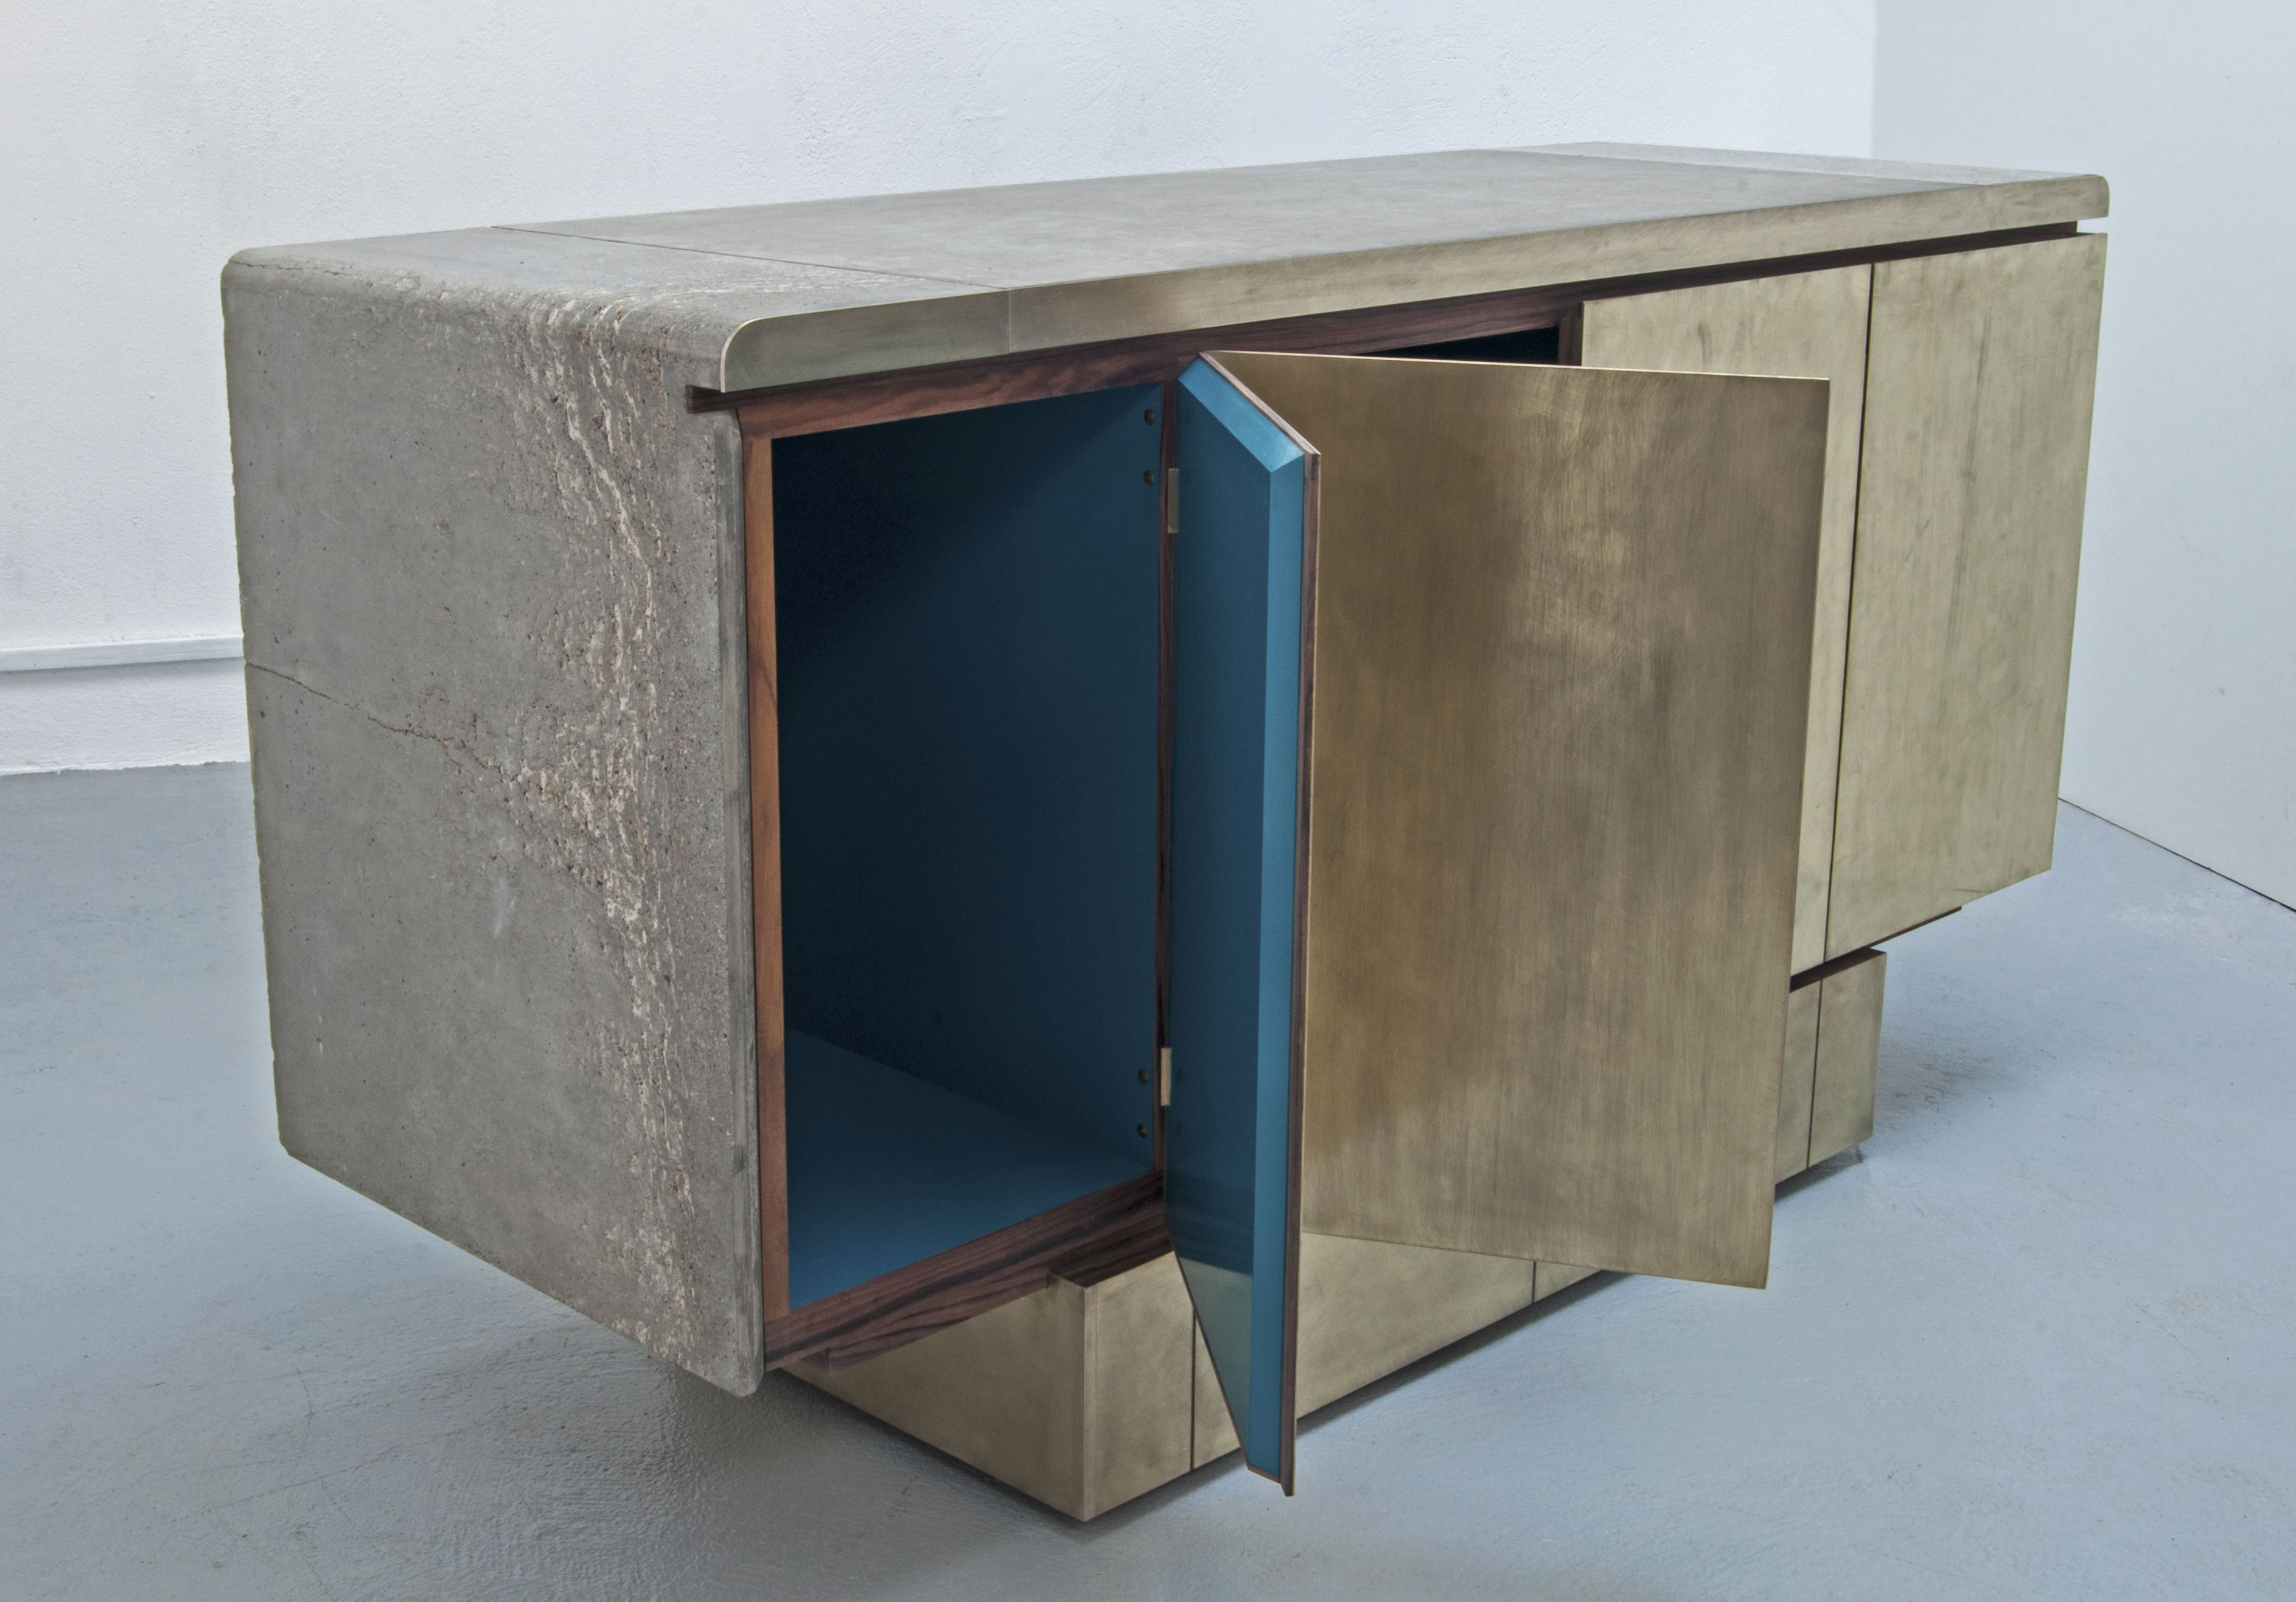 New Cabinet (small version) with cast concrete top and side L sections, over vibrated to create errors giving great pattern and texture. Scratched brass front with brush painted high gloss interior and rosewood detailing.